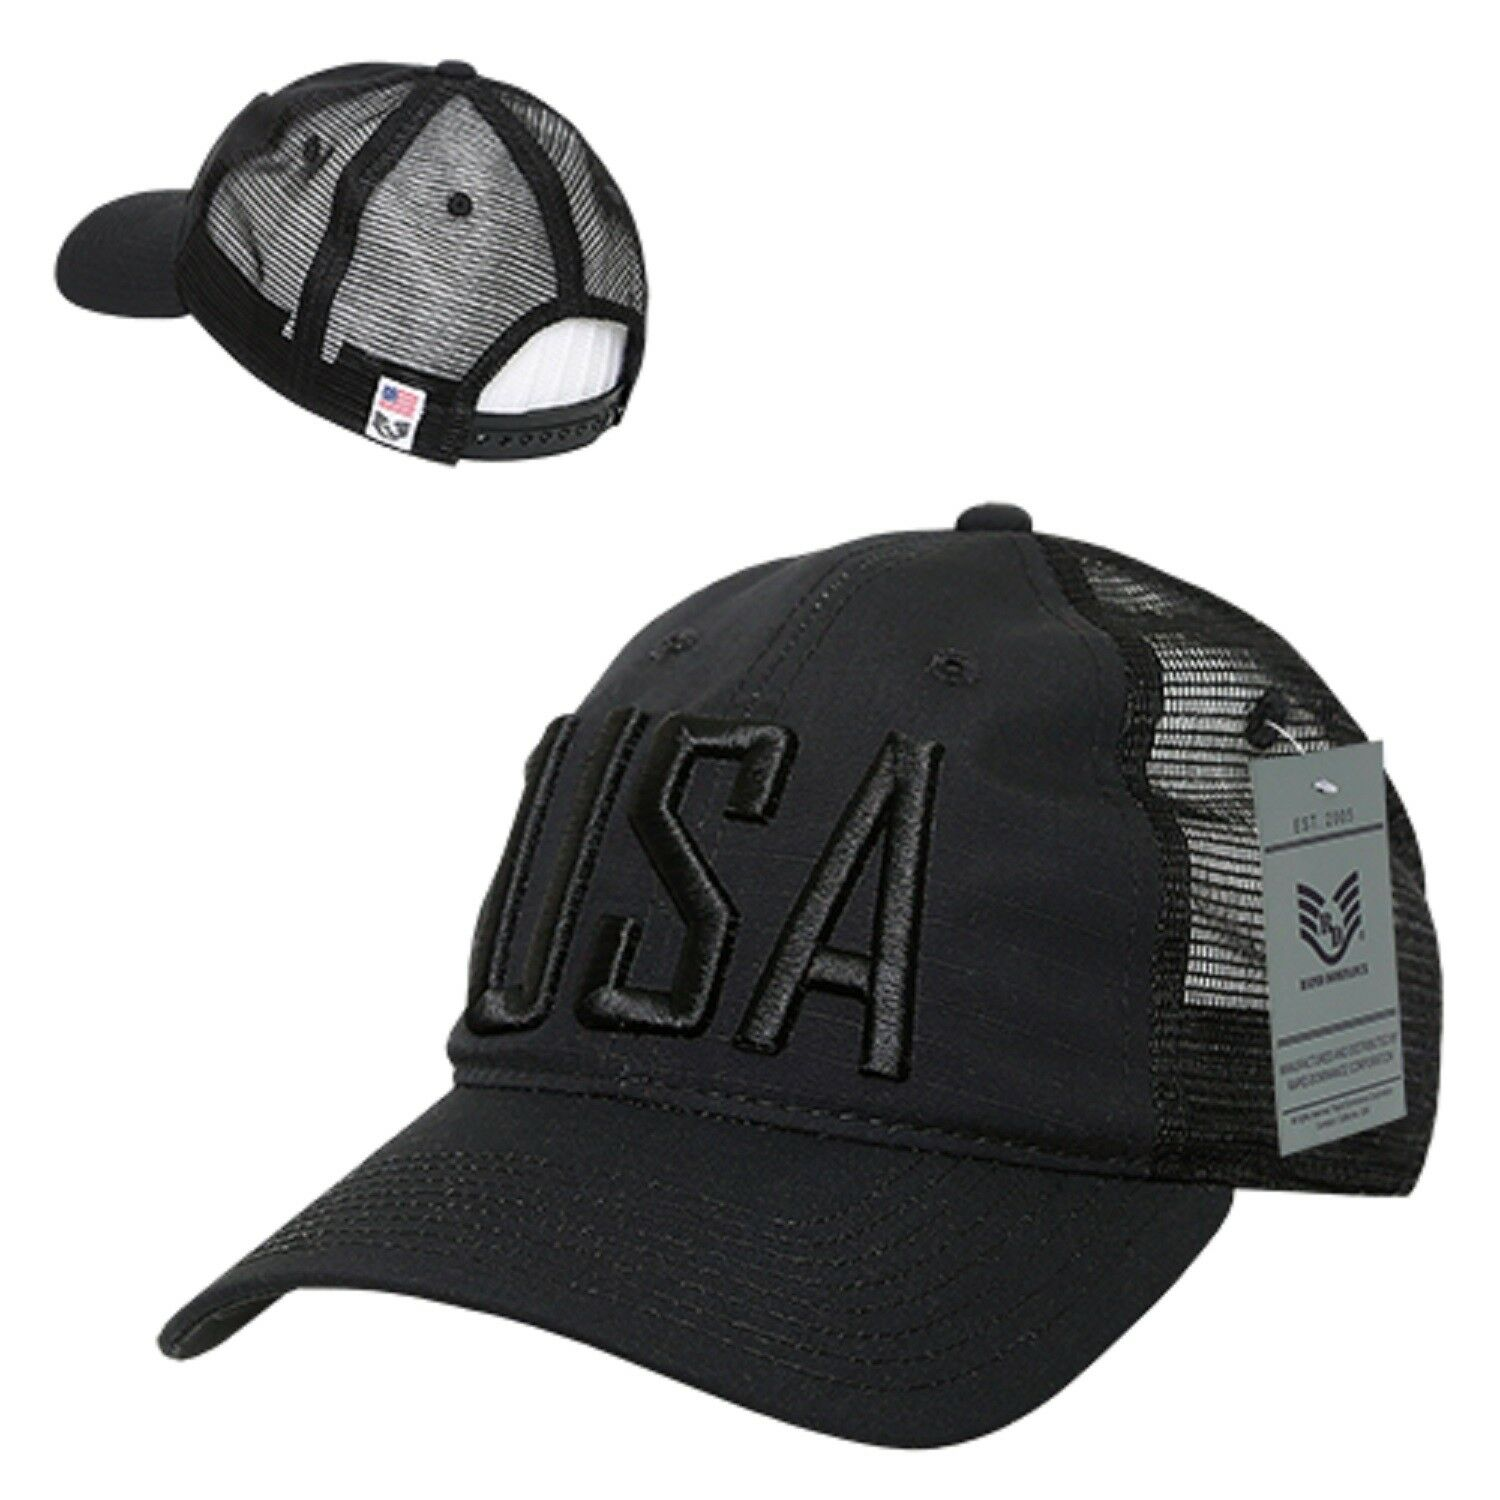 7ddd93c239e Details about Black USA US United States of America Ripstop Mesh Trucker  Flag Baseball Hat Cap